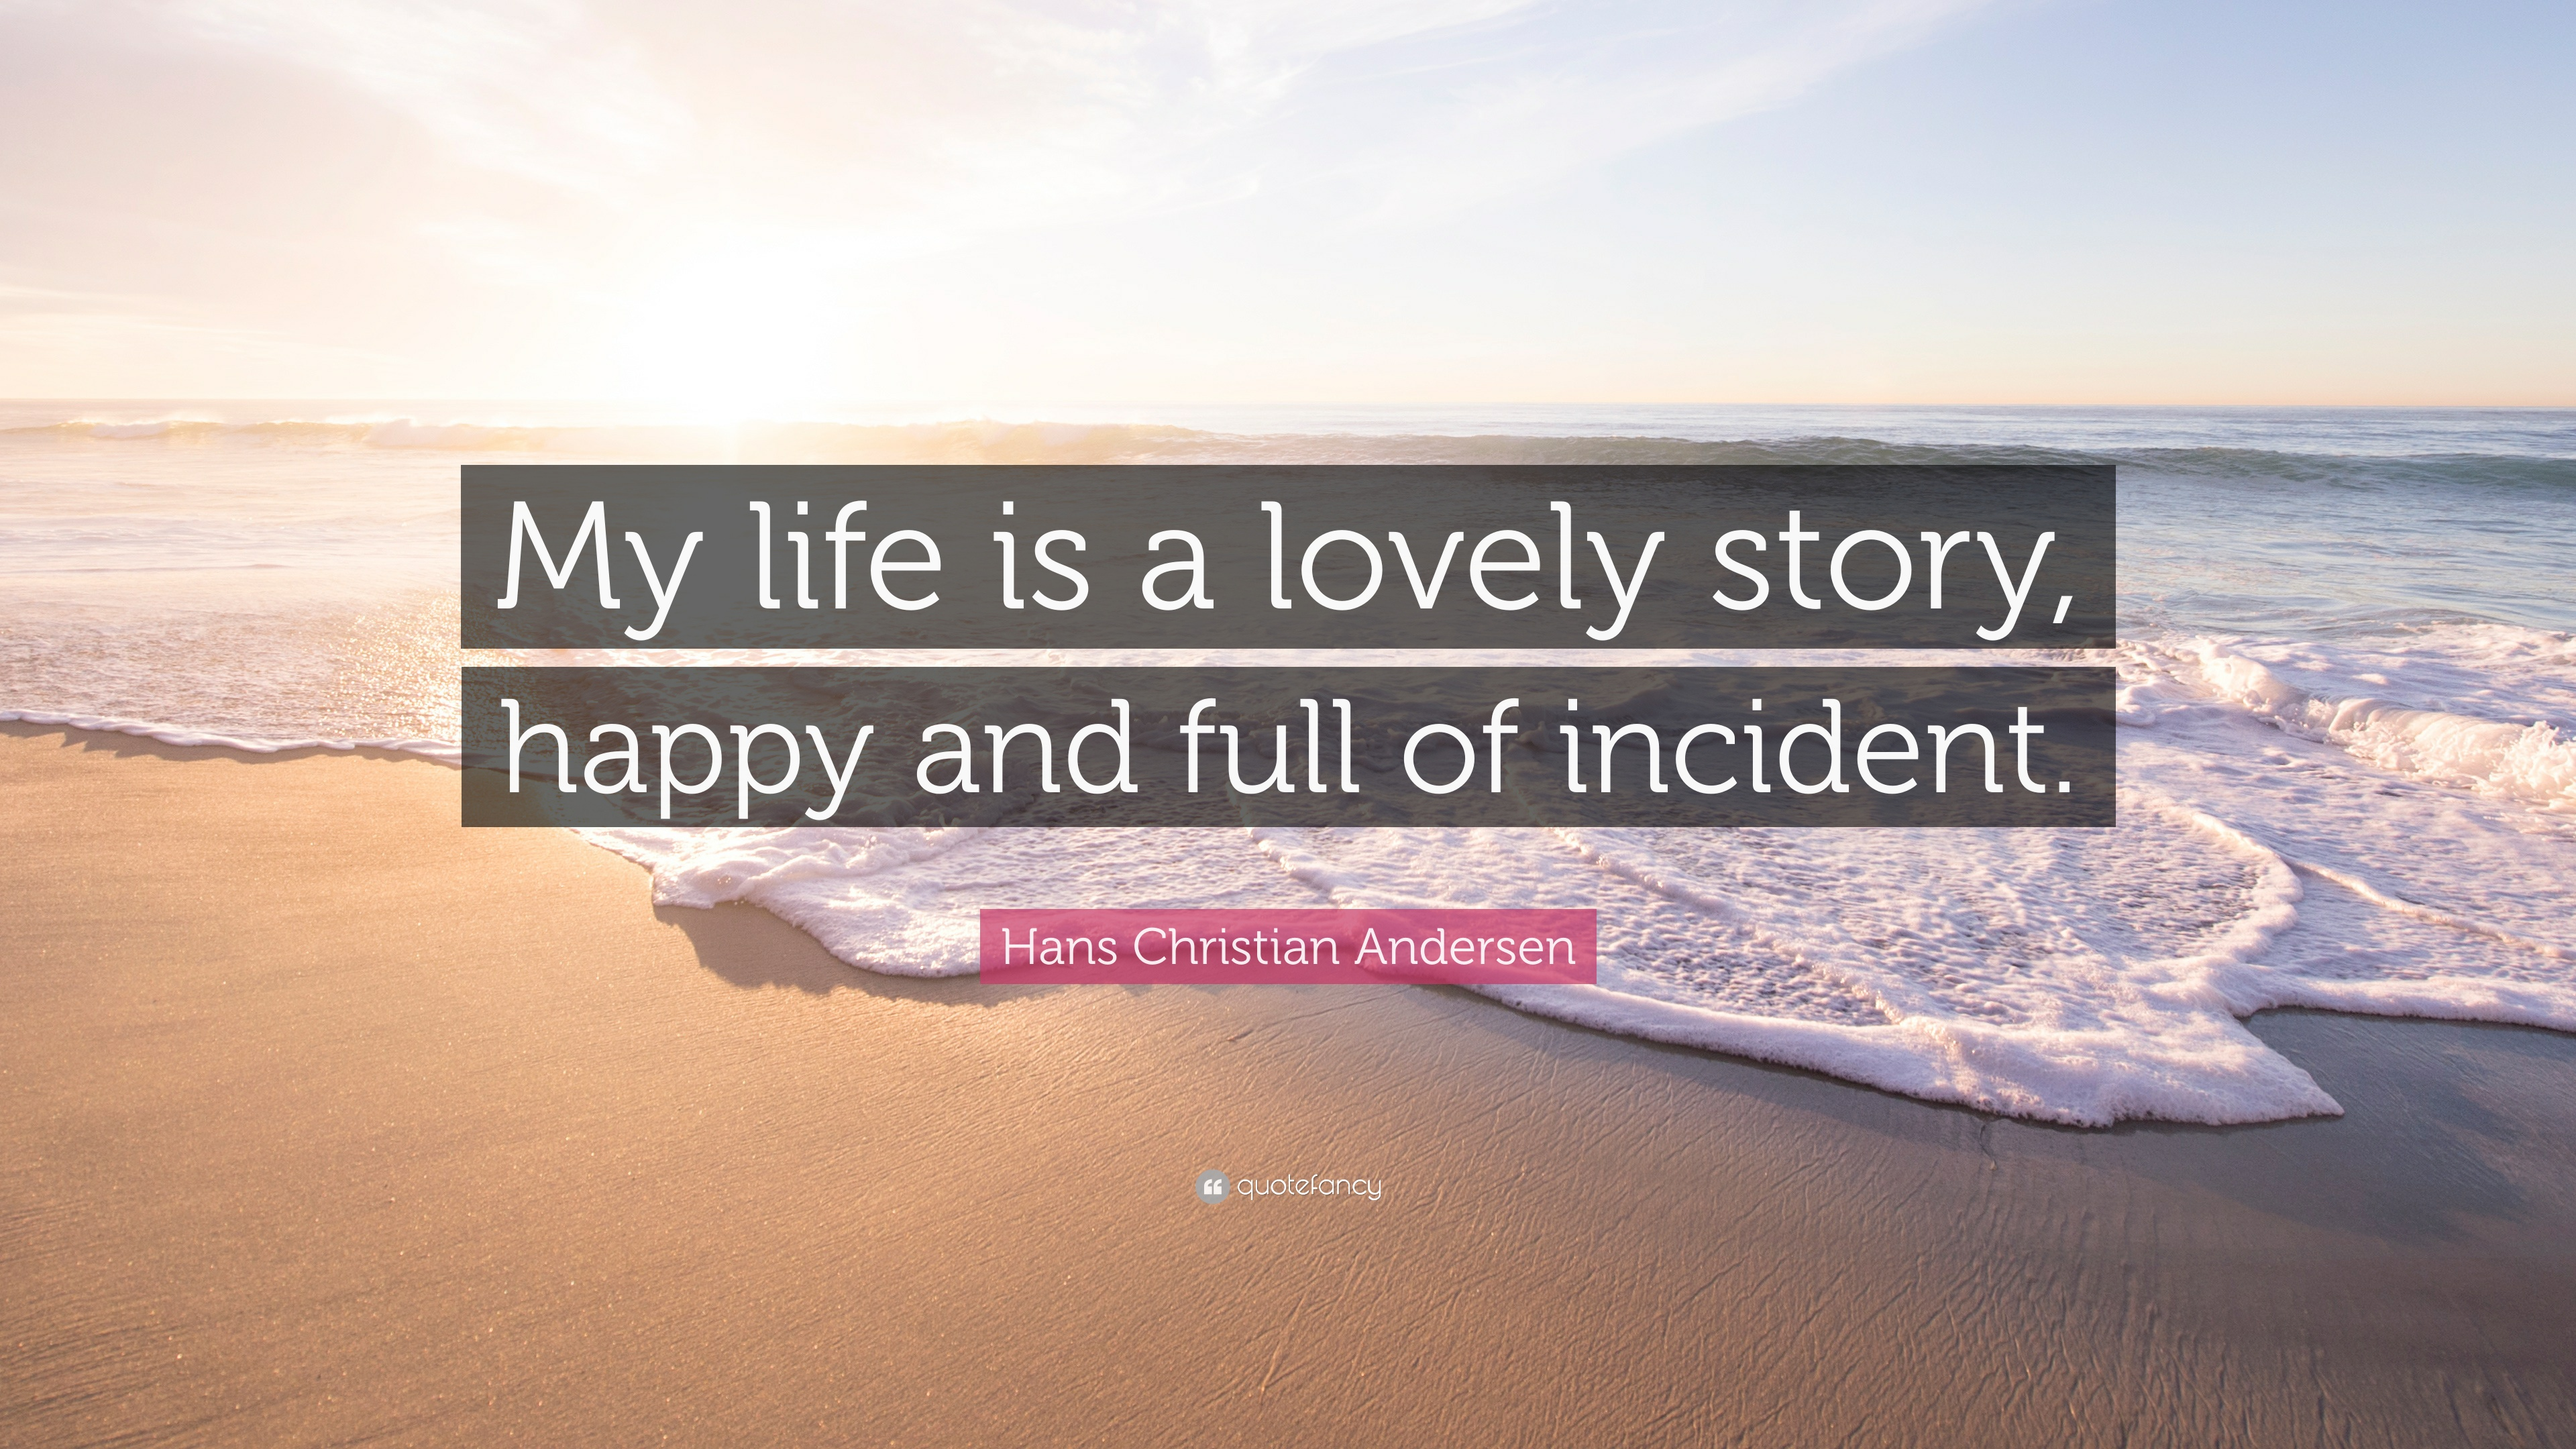 Hans Christian Andersen Quote: U201cMy Life Is A Lovely Story, Happy And Full